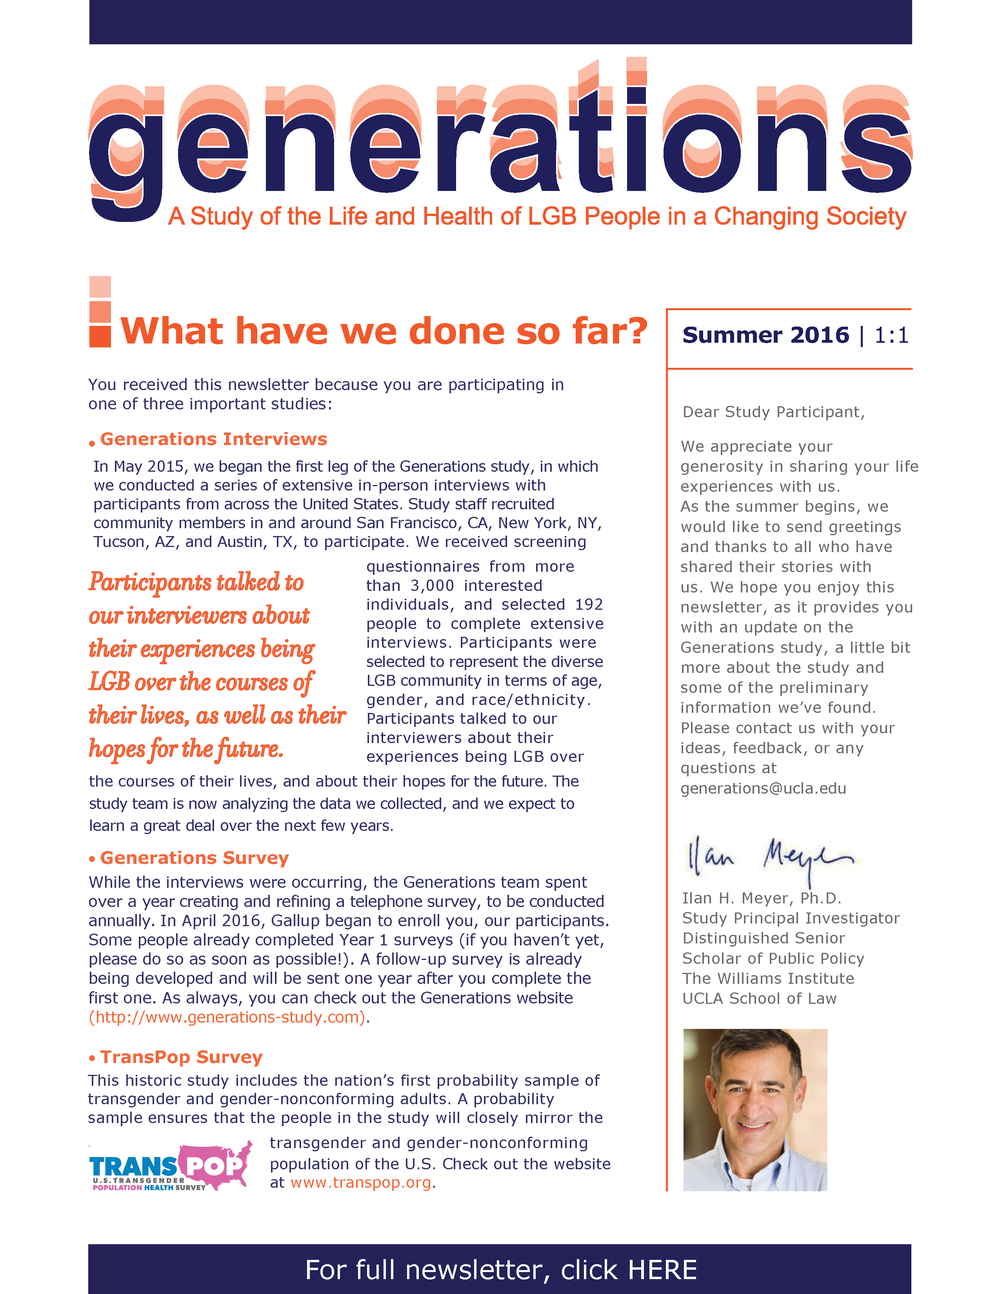 UCLAWI_GenerationsNewsletter_Summer2016_PRESS_final (new email add)_Page_1.png